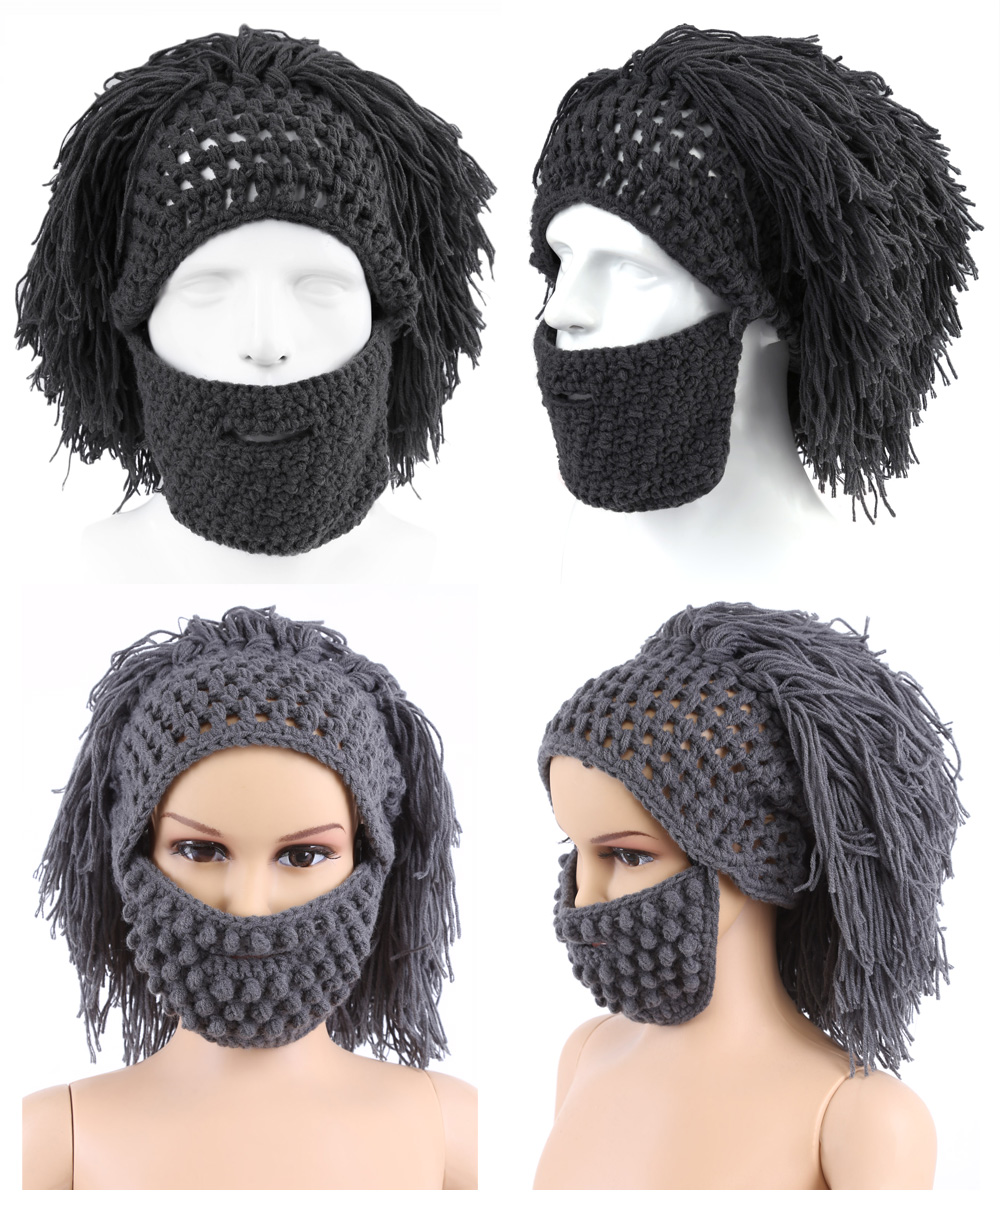 Christmas Halloween Woolen Wig Beard Hair Shape Knitted Hat for Father Son